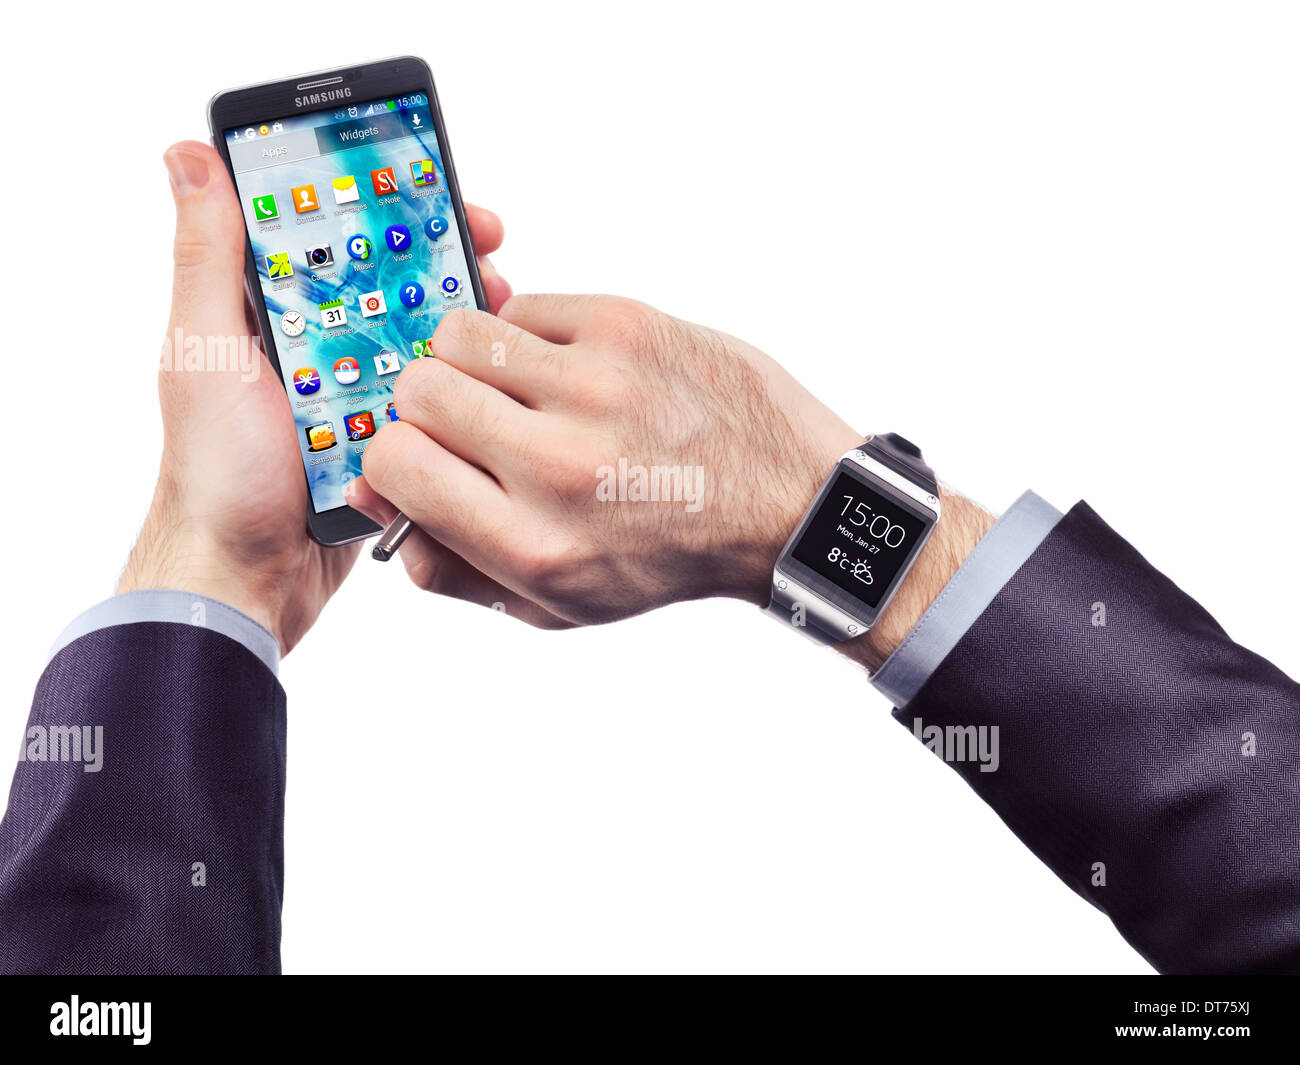 Hands of a person wearing Samsung Galaxy Gear watch and holding Galaxy Note 3 smartphone isolated on white background - Stock Image